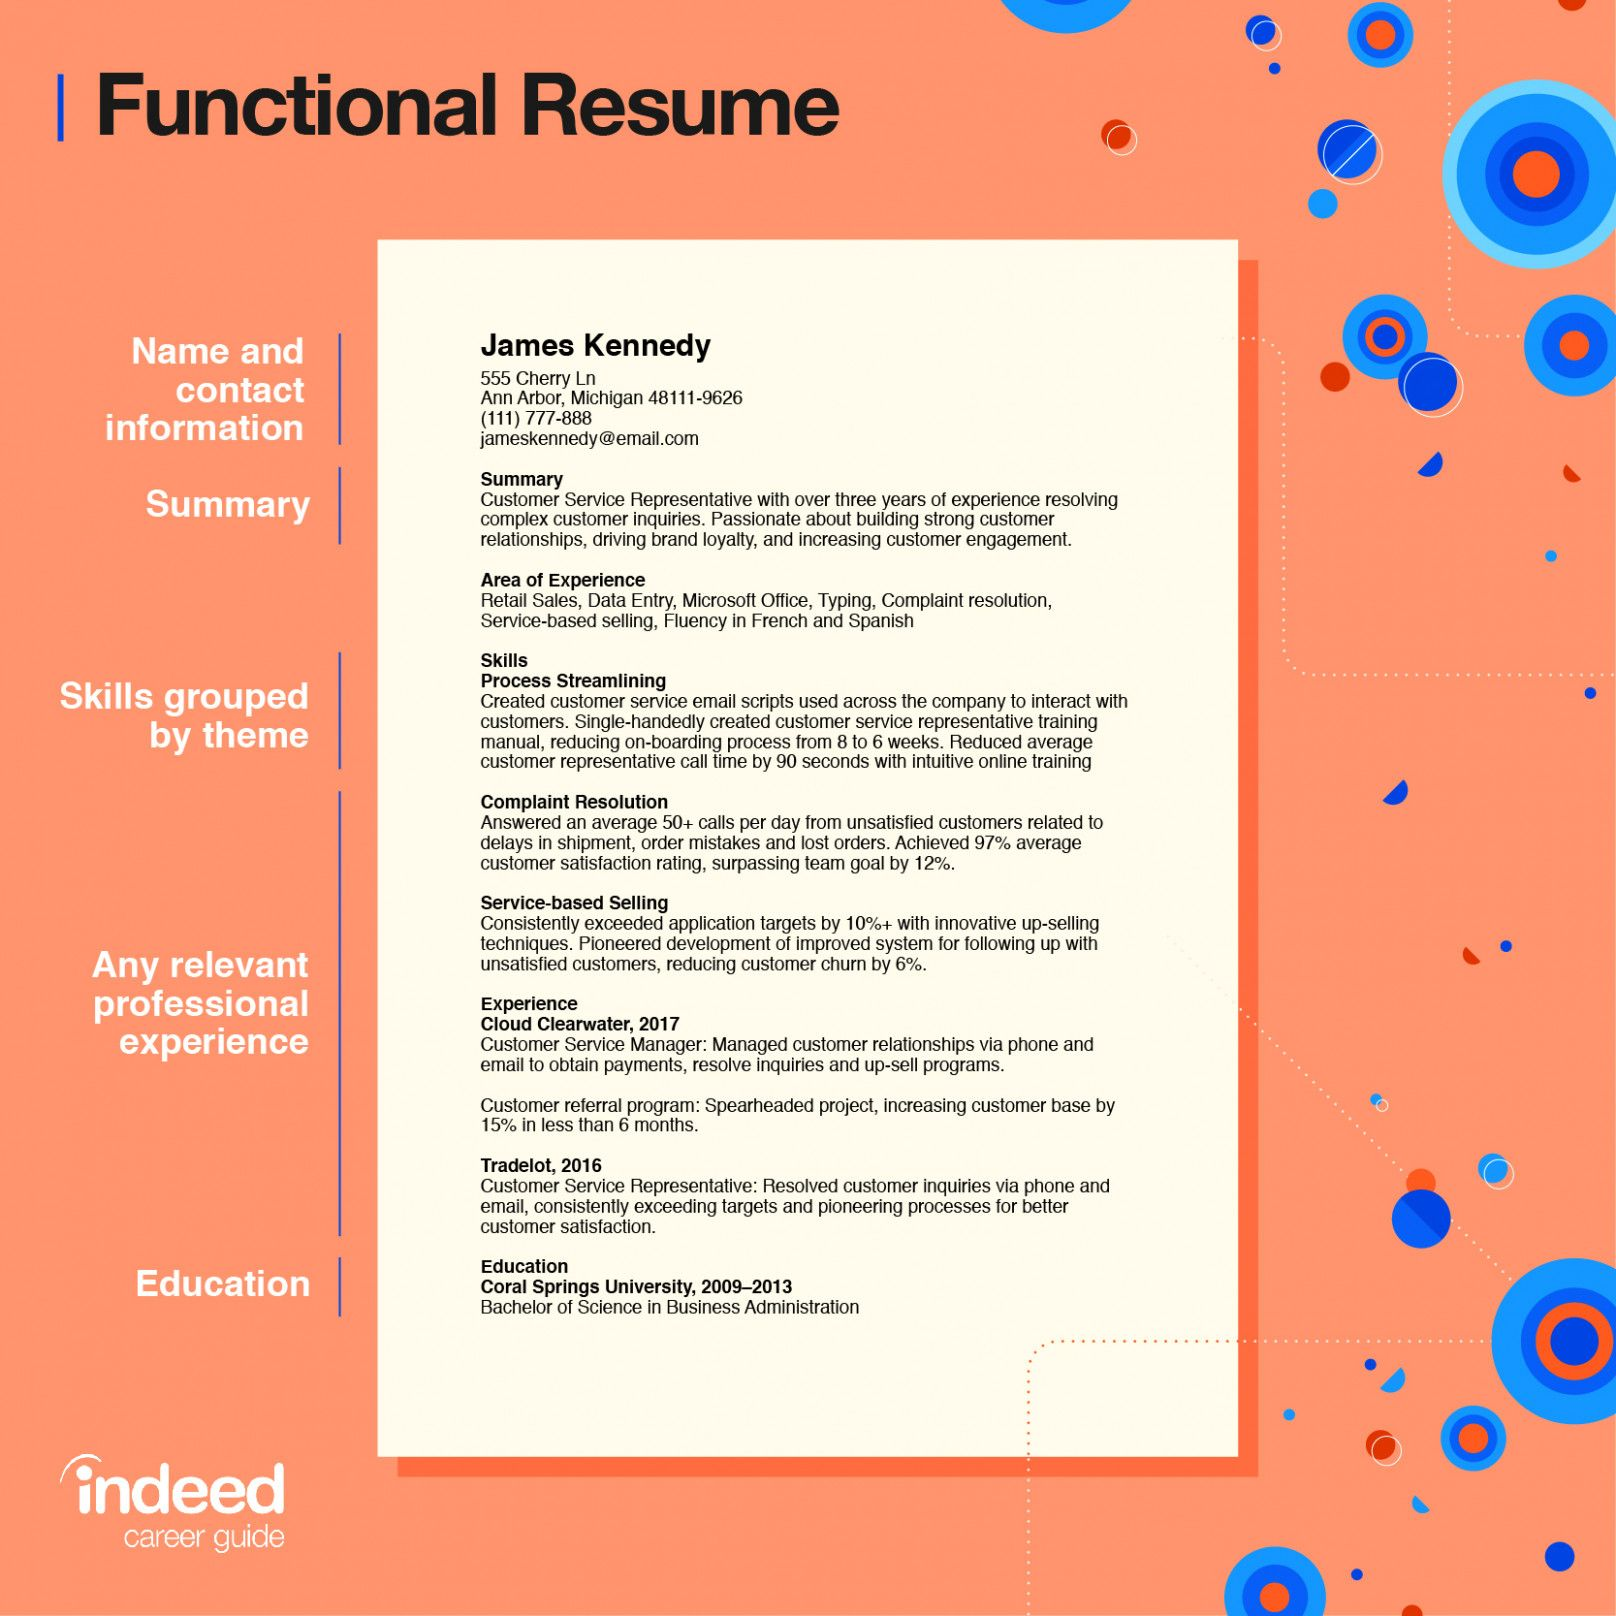 15 How To Make A Resume For Your First Job Interview di 2020